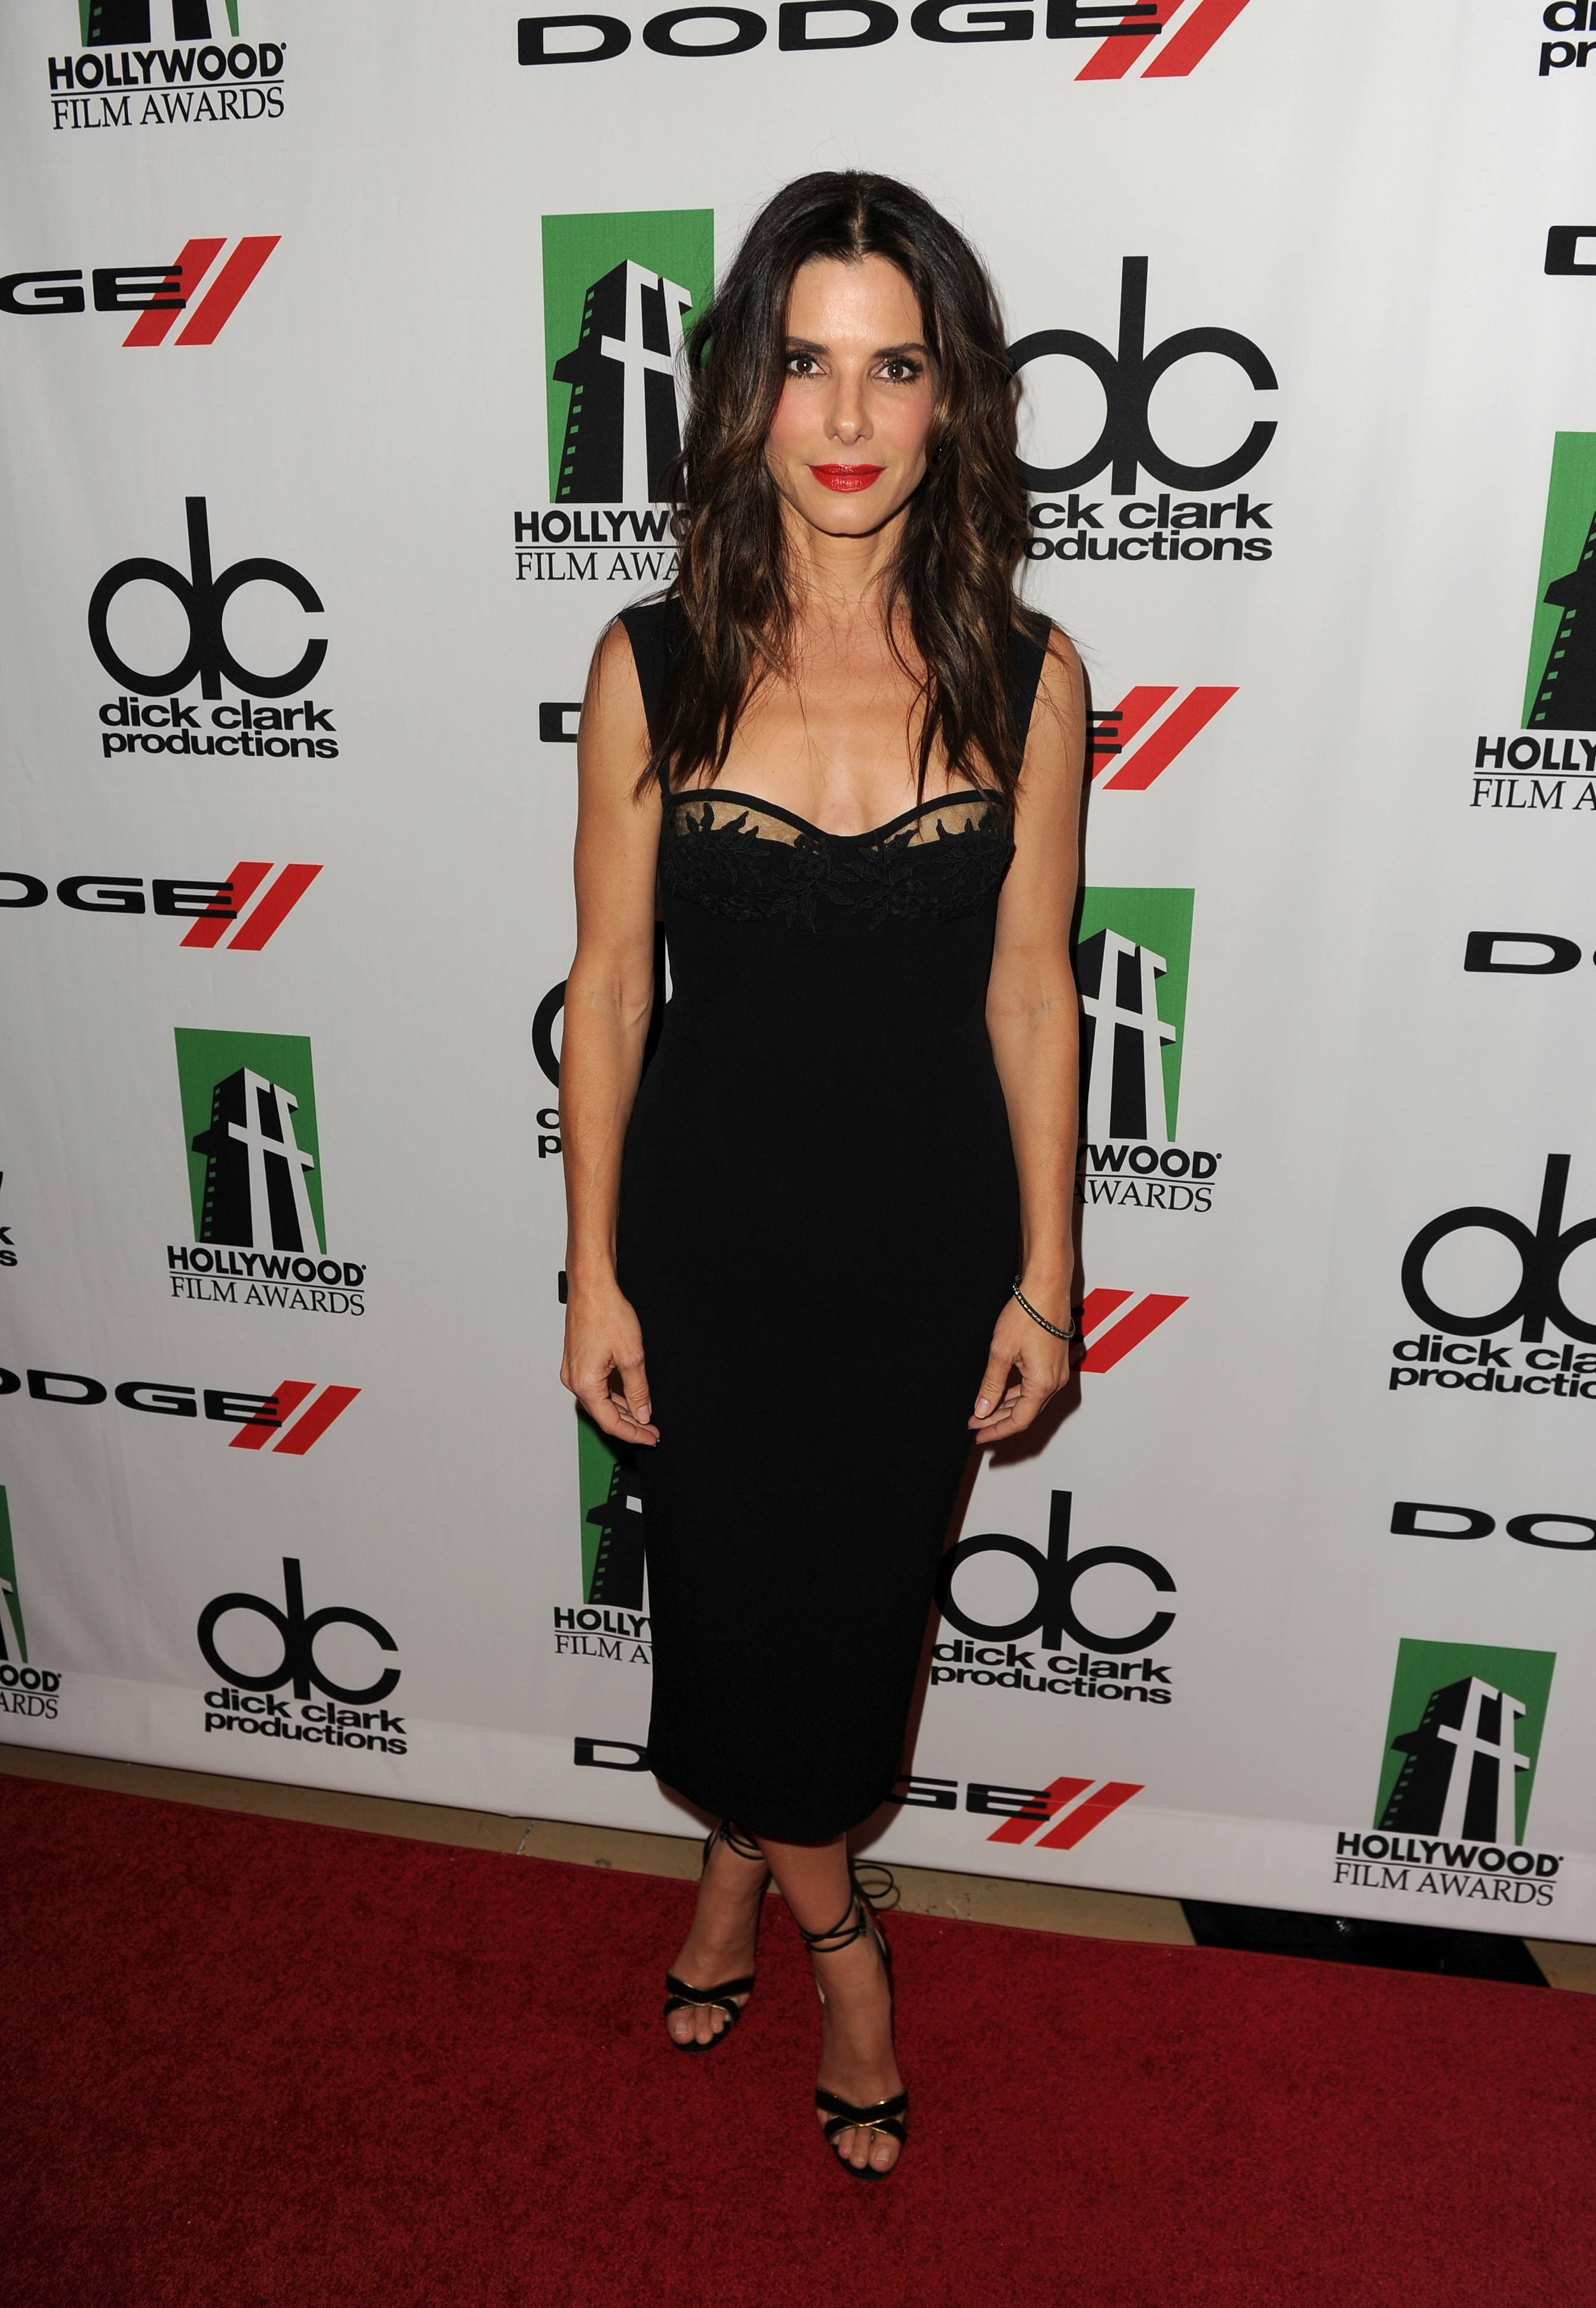 17th Annual Hollywood Film Awards – Red Carpet